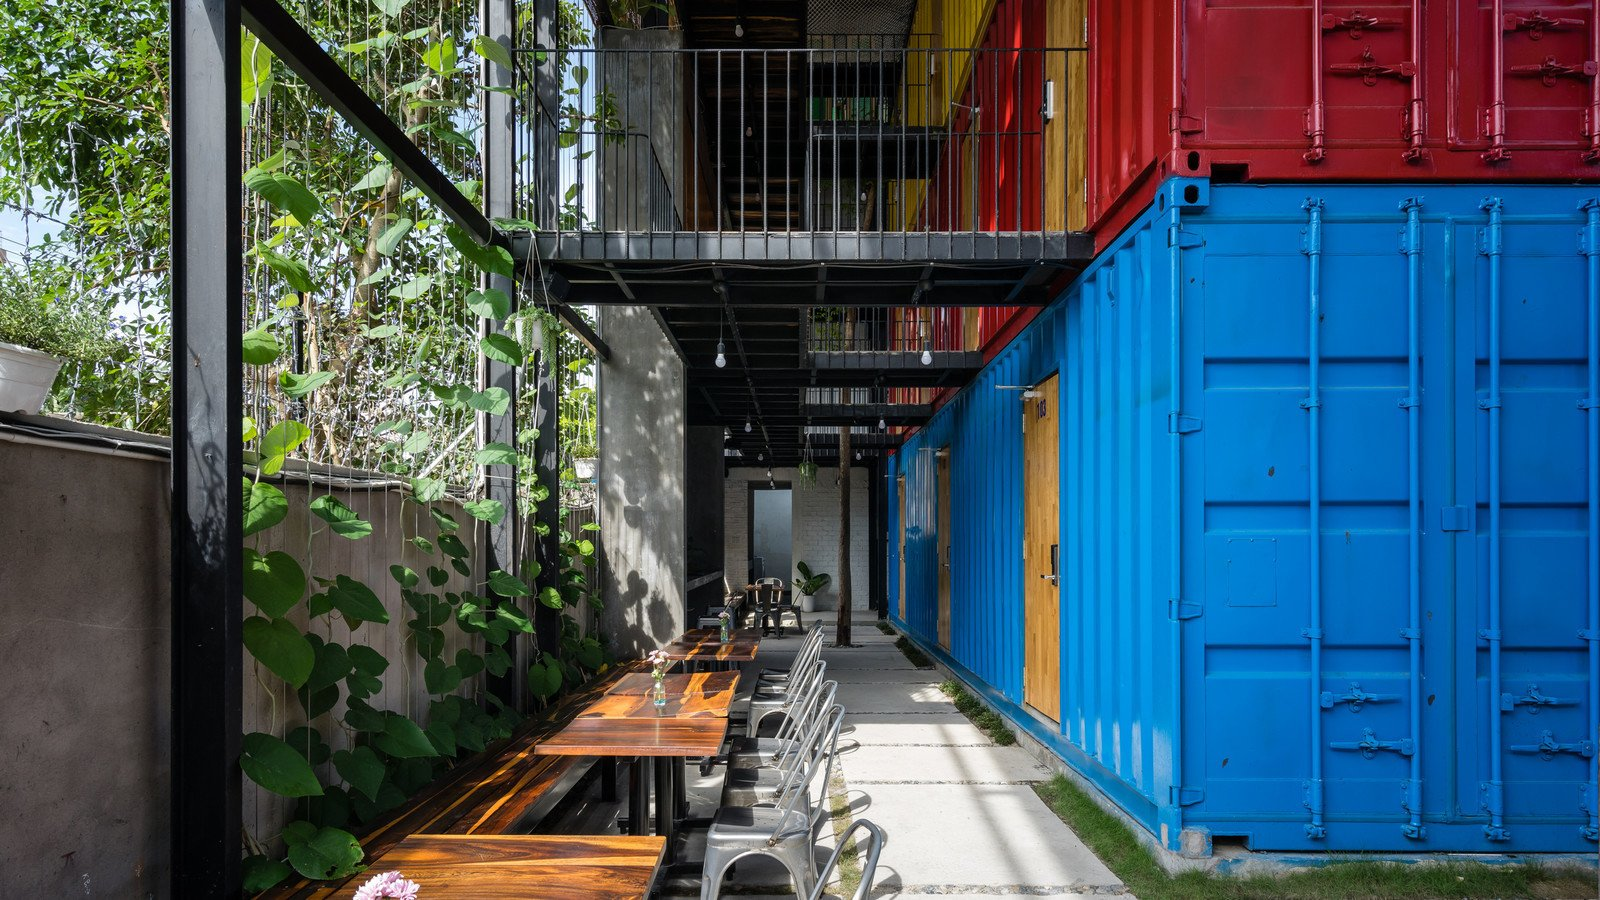 6 Well Designed Hostels For The Minimalist Traveler Dwell